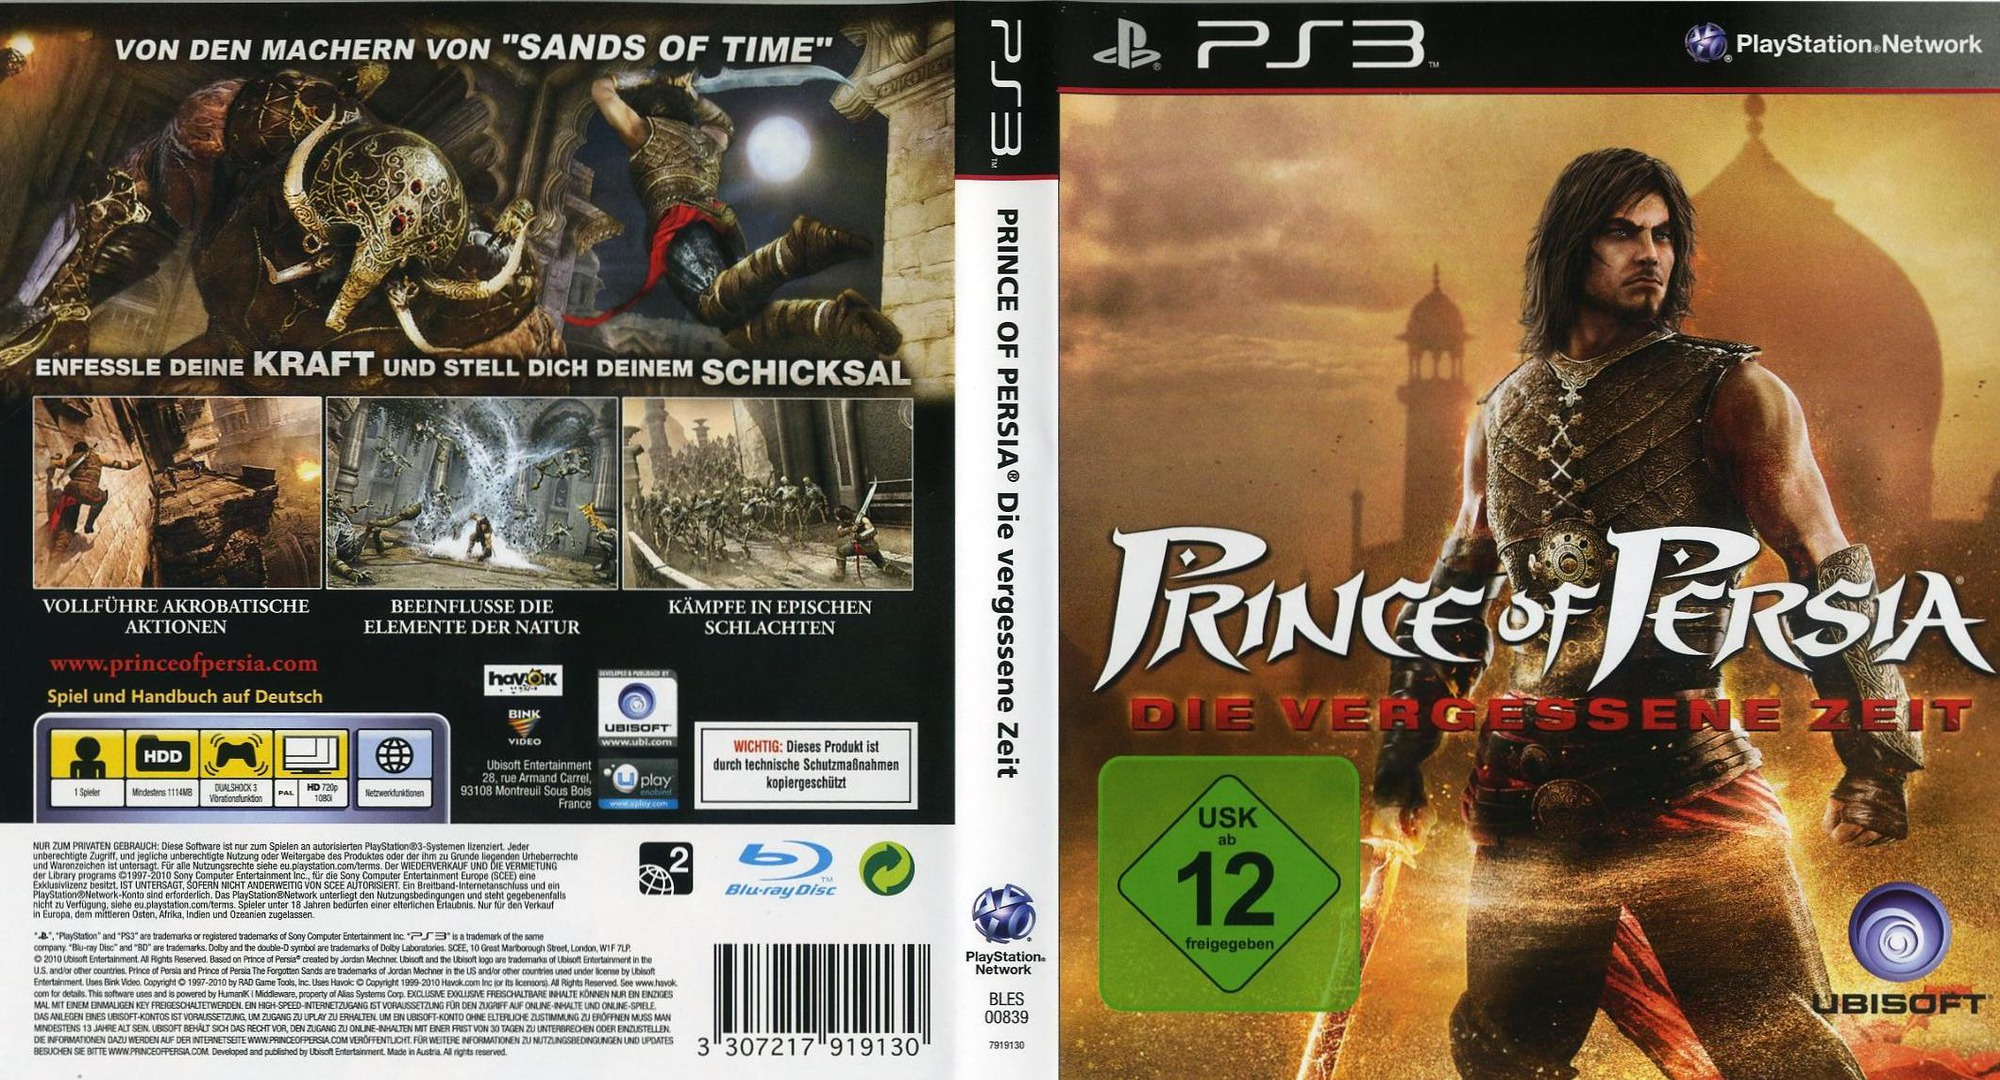 Release Date >> BLES00839 - Prince of Persia: The Forgotten Sands